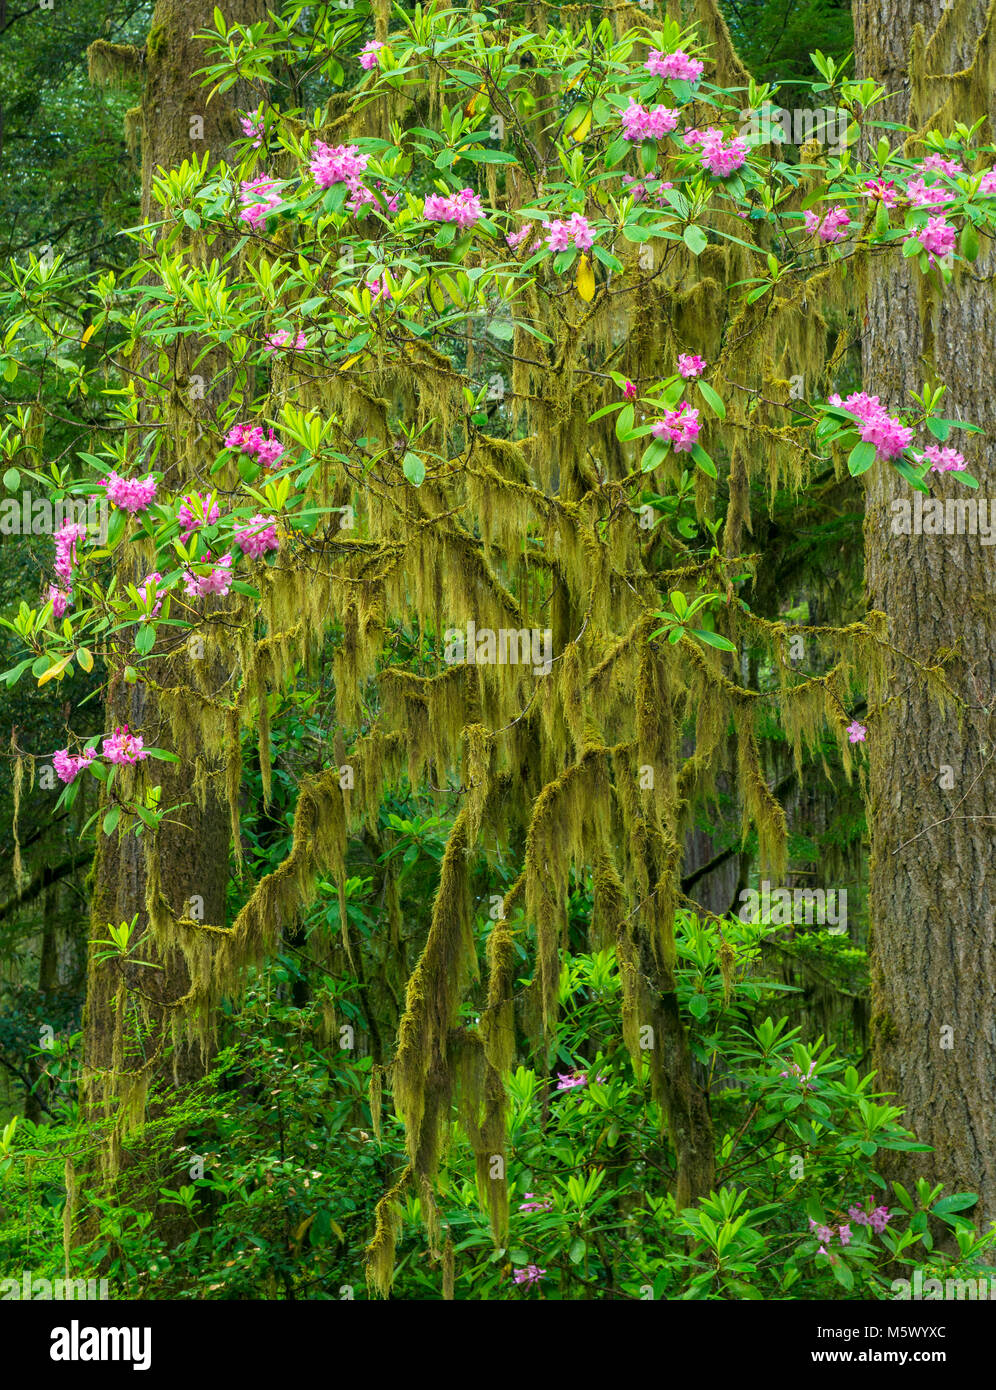 Rhododendron Bloom, Jedediah Smith Redwoods State Park, Redwood National and State Parks, California - Stock Image